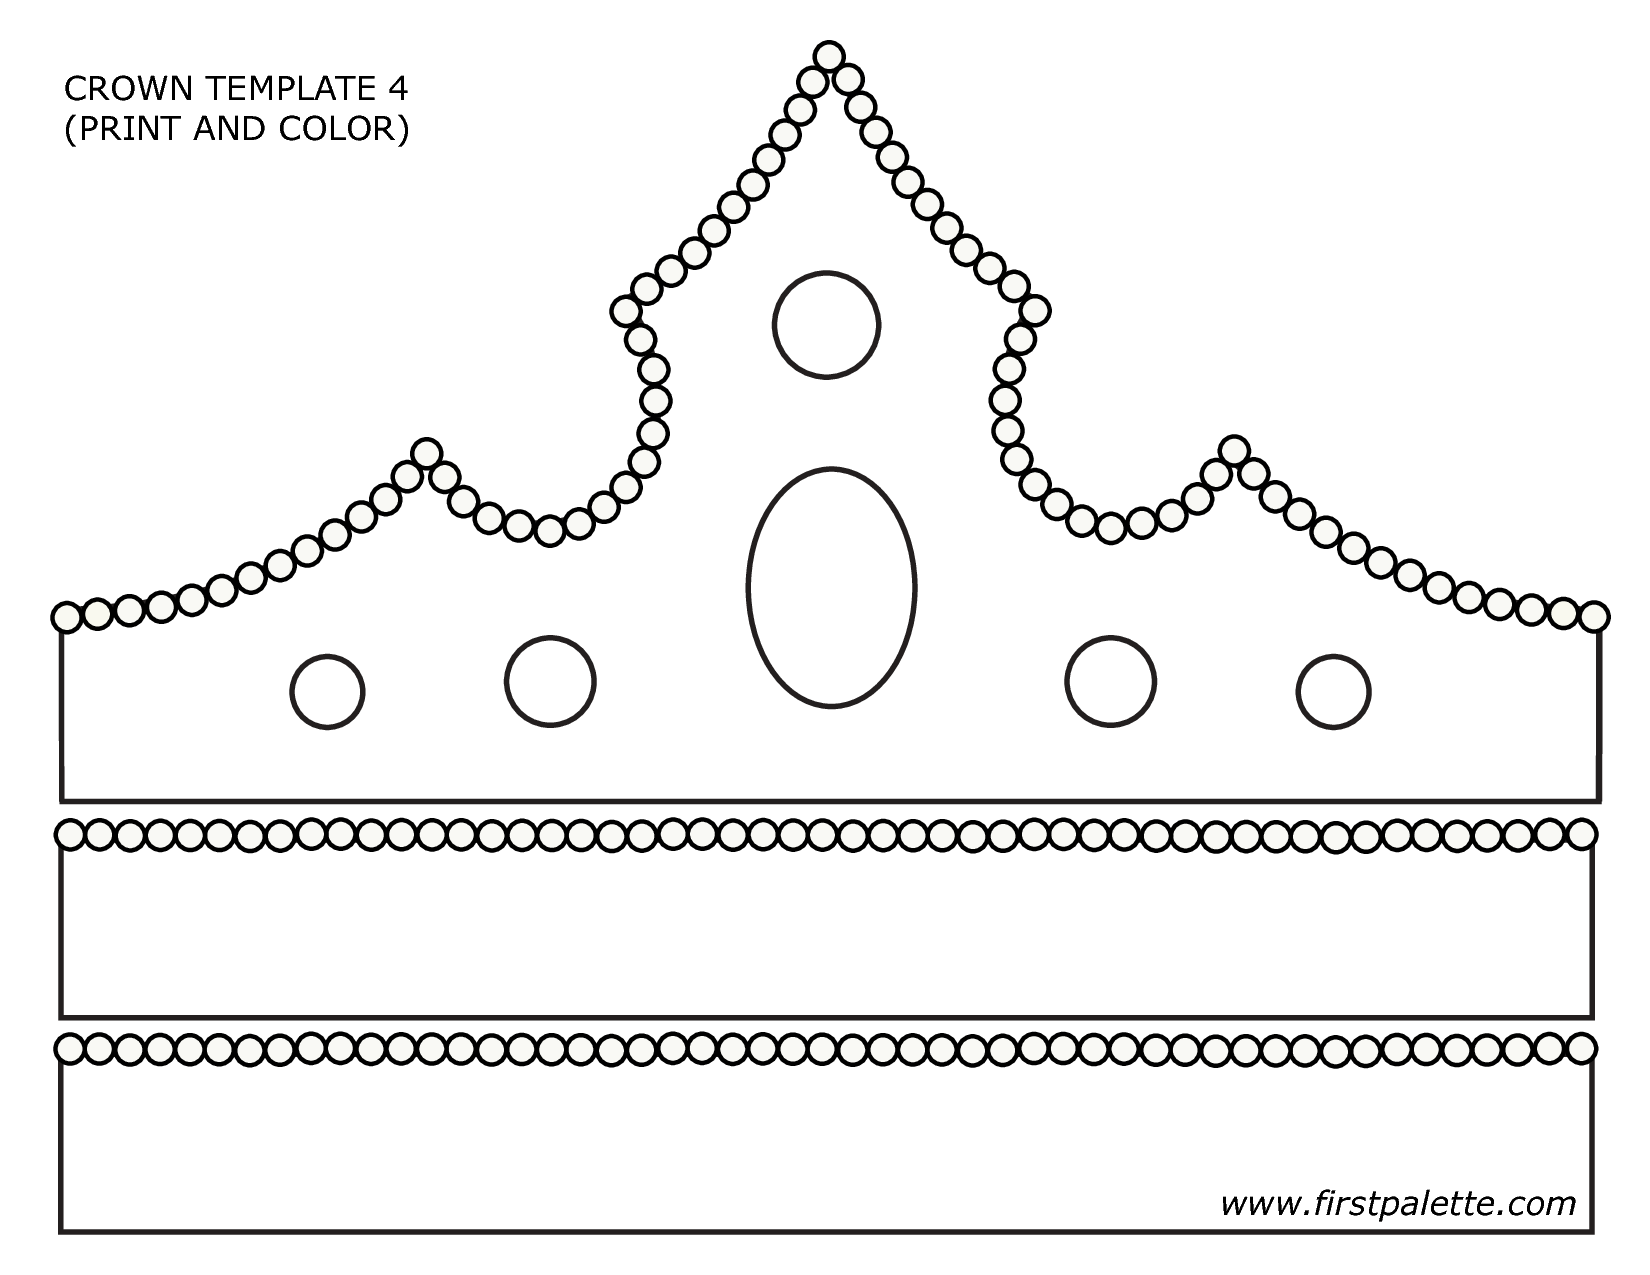 tiara template printable free - paper crown template google search primary pinterest